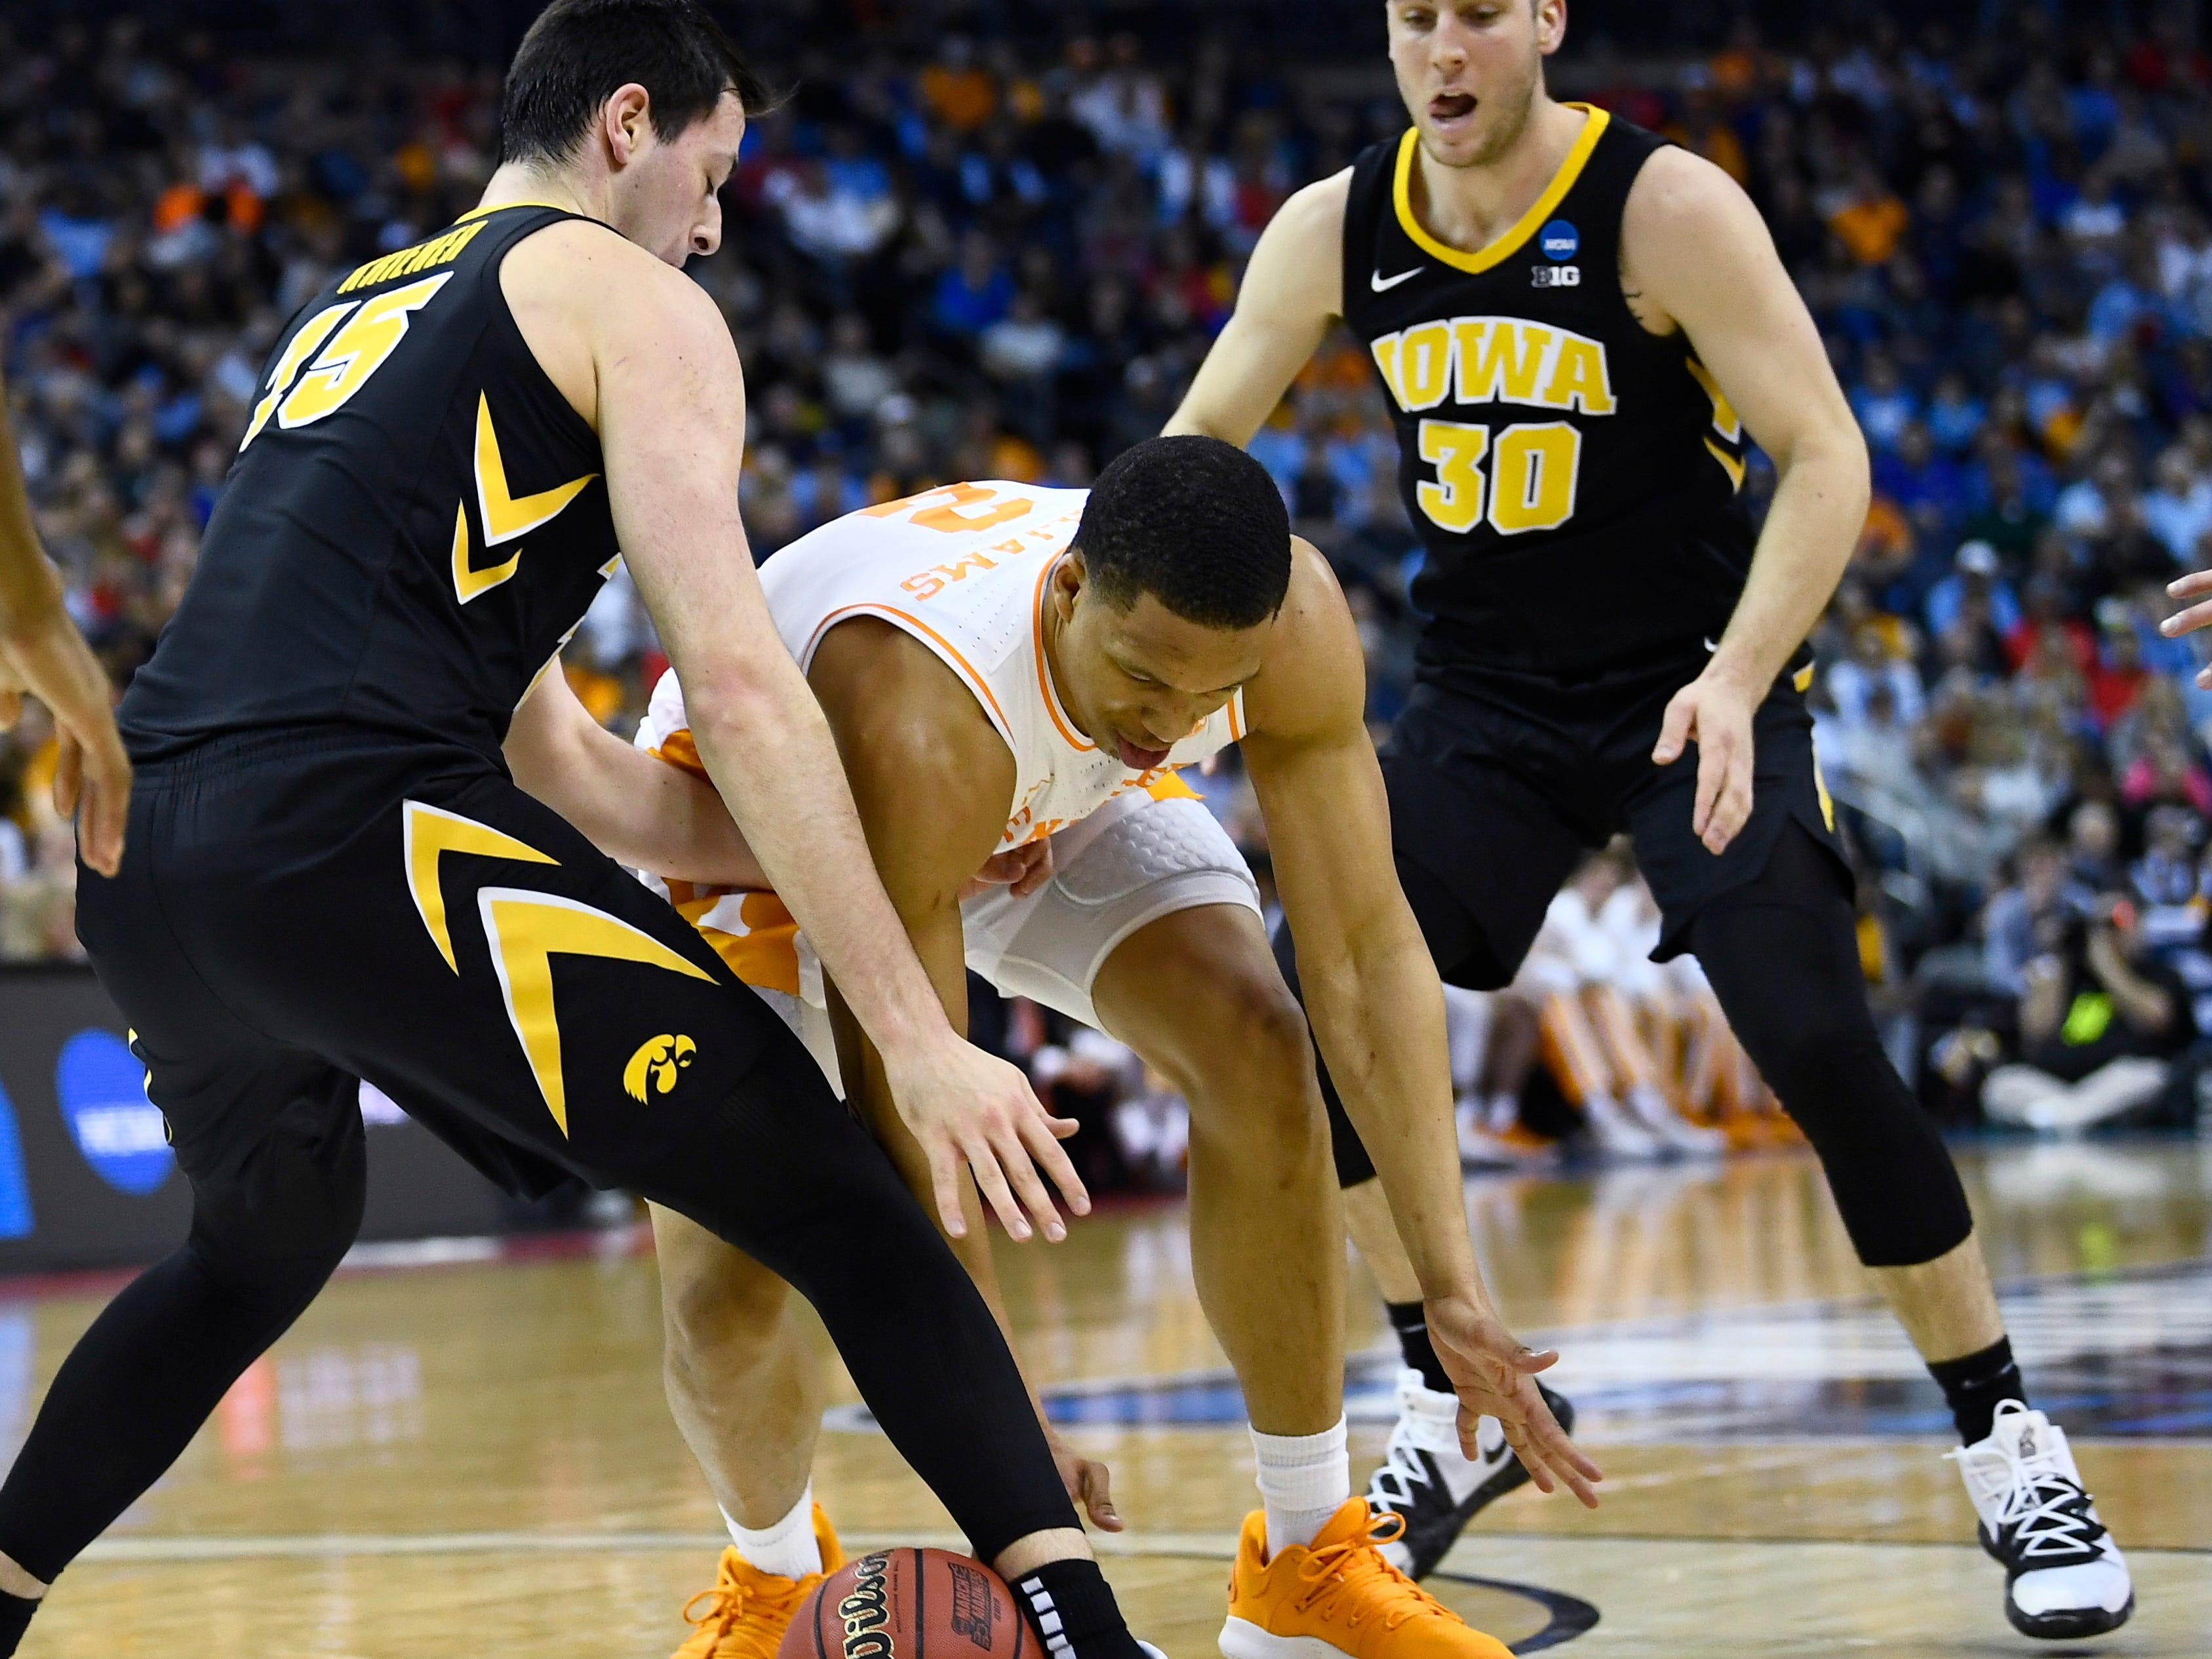 Tennessee forward Grant Williams (2) goes after a loose ball between Iowa forward Ryan Kriener (15) and guard Connor McCaffery (30) during the first half of the game in the second round of the NCAA Tournament at Nationwide Arena in Columbus, Ohio, Sunday, March 24, 2019.